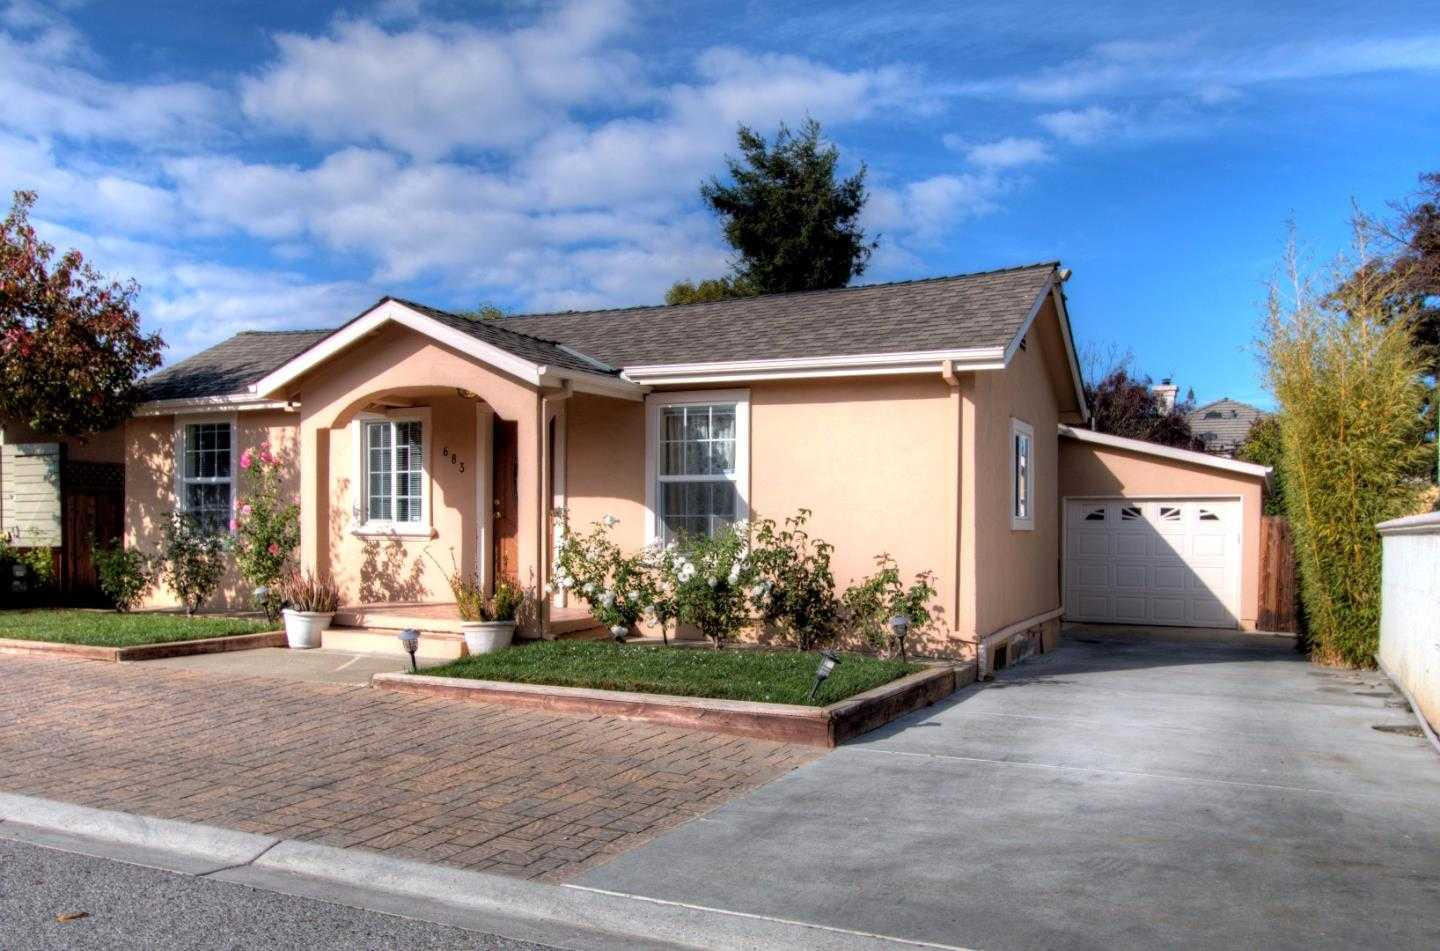 $1,690,000 - 3Br/2Ba -  for Sale in Sunnyvale